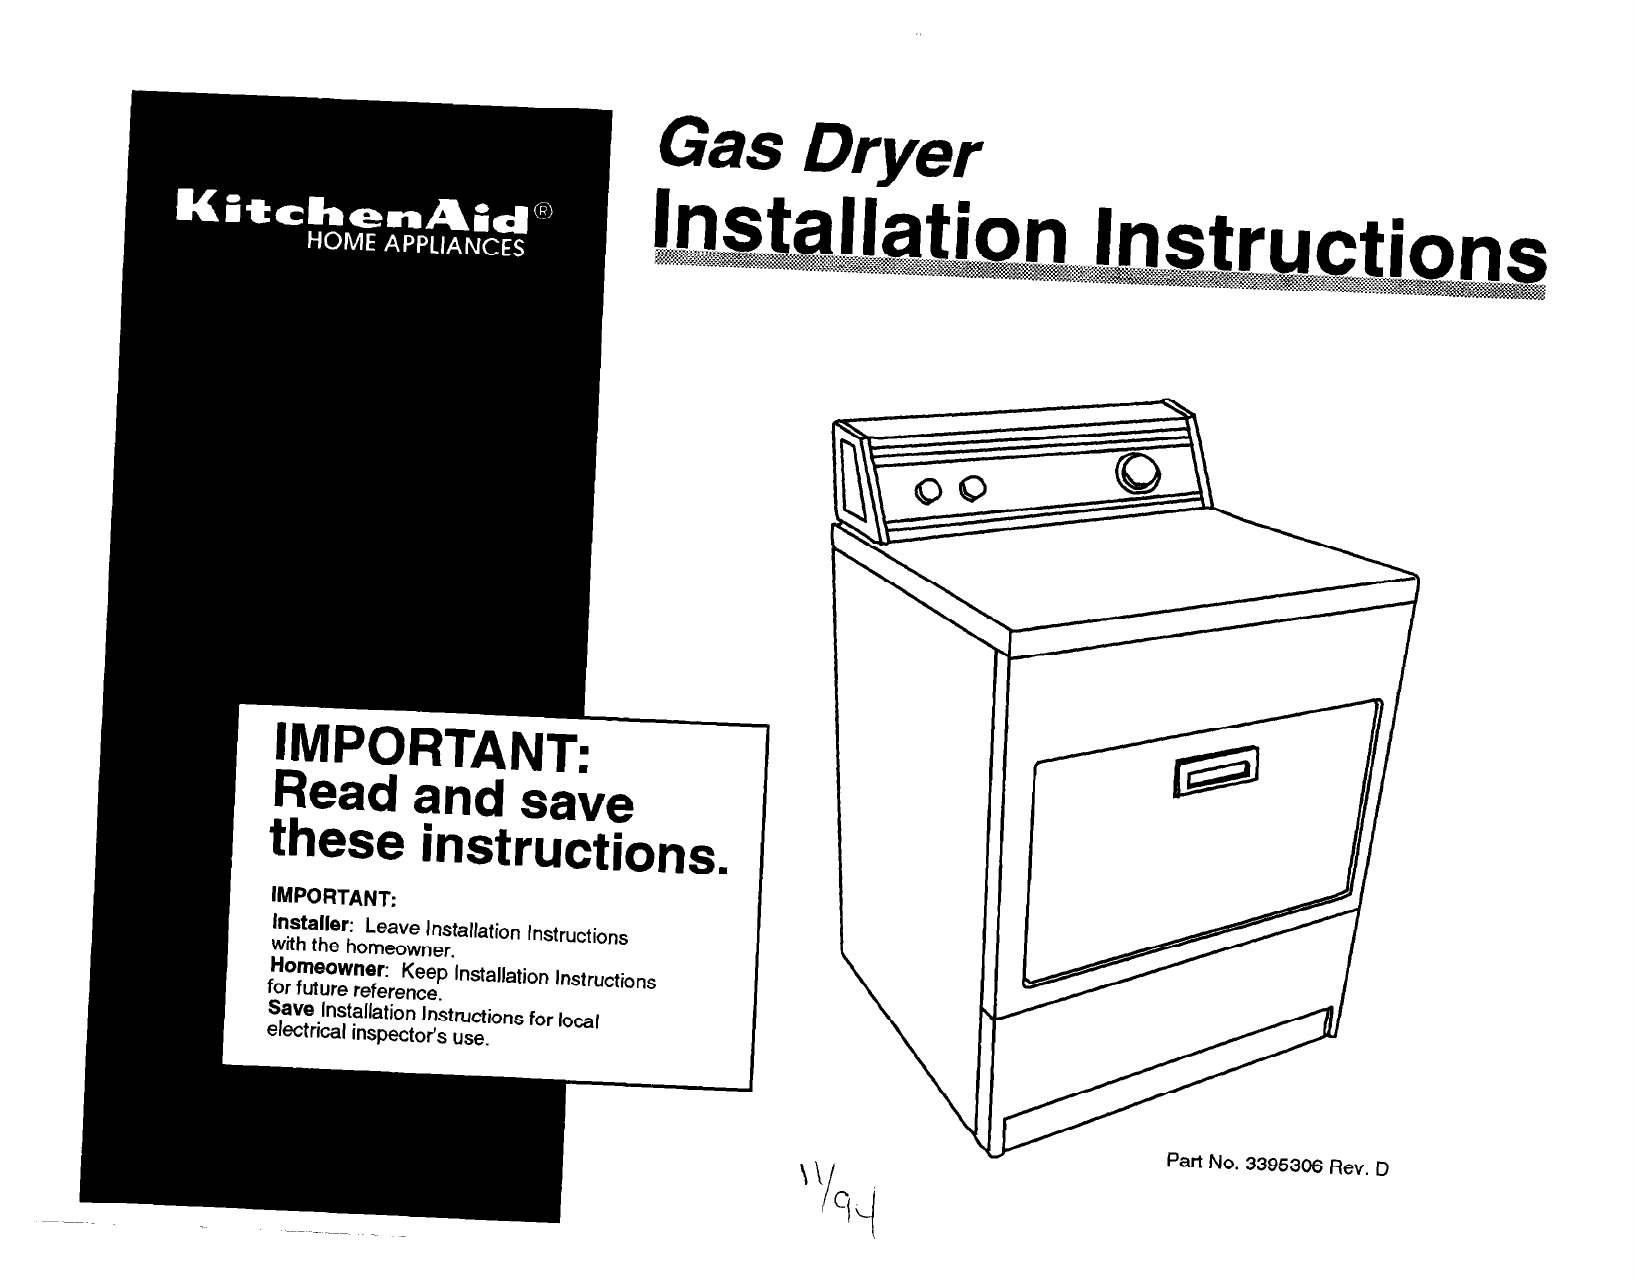 KitchenAid Clothes Dryer Clothes Dryer User Guide